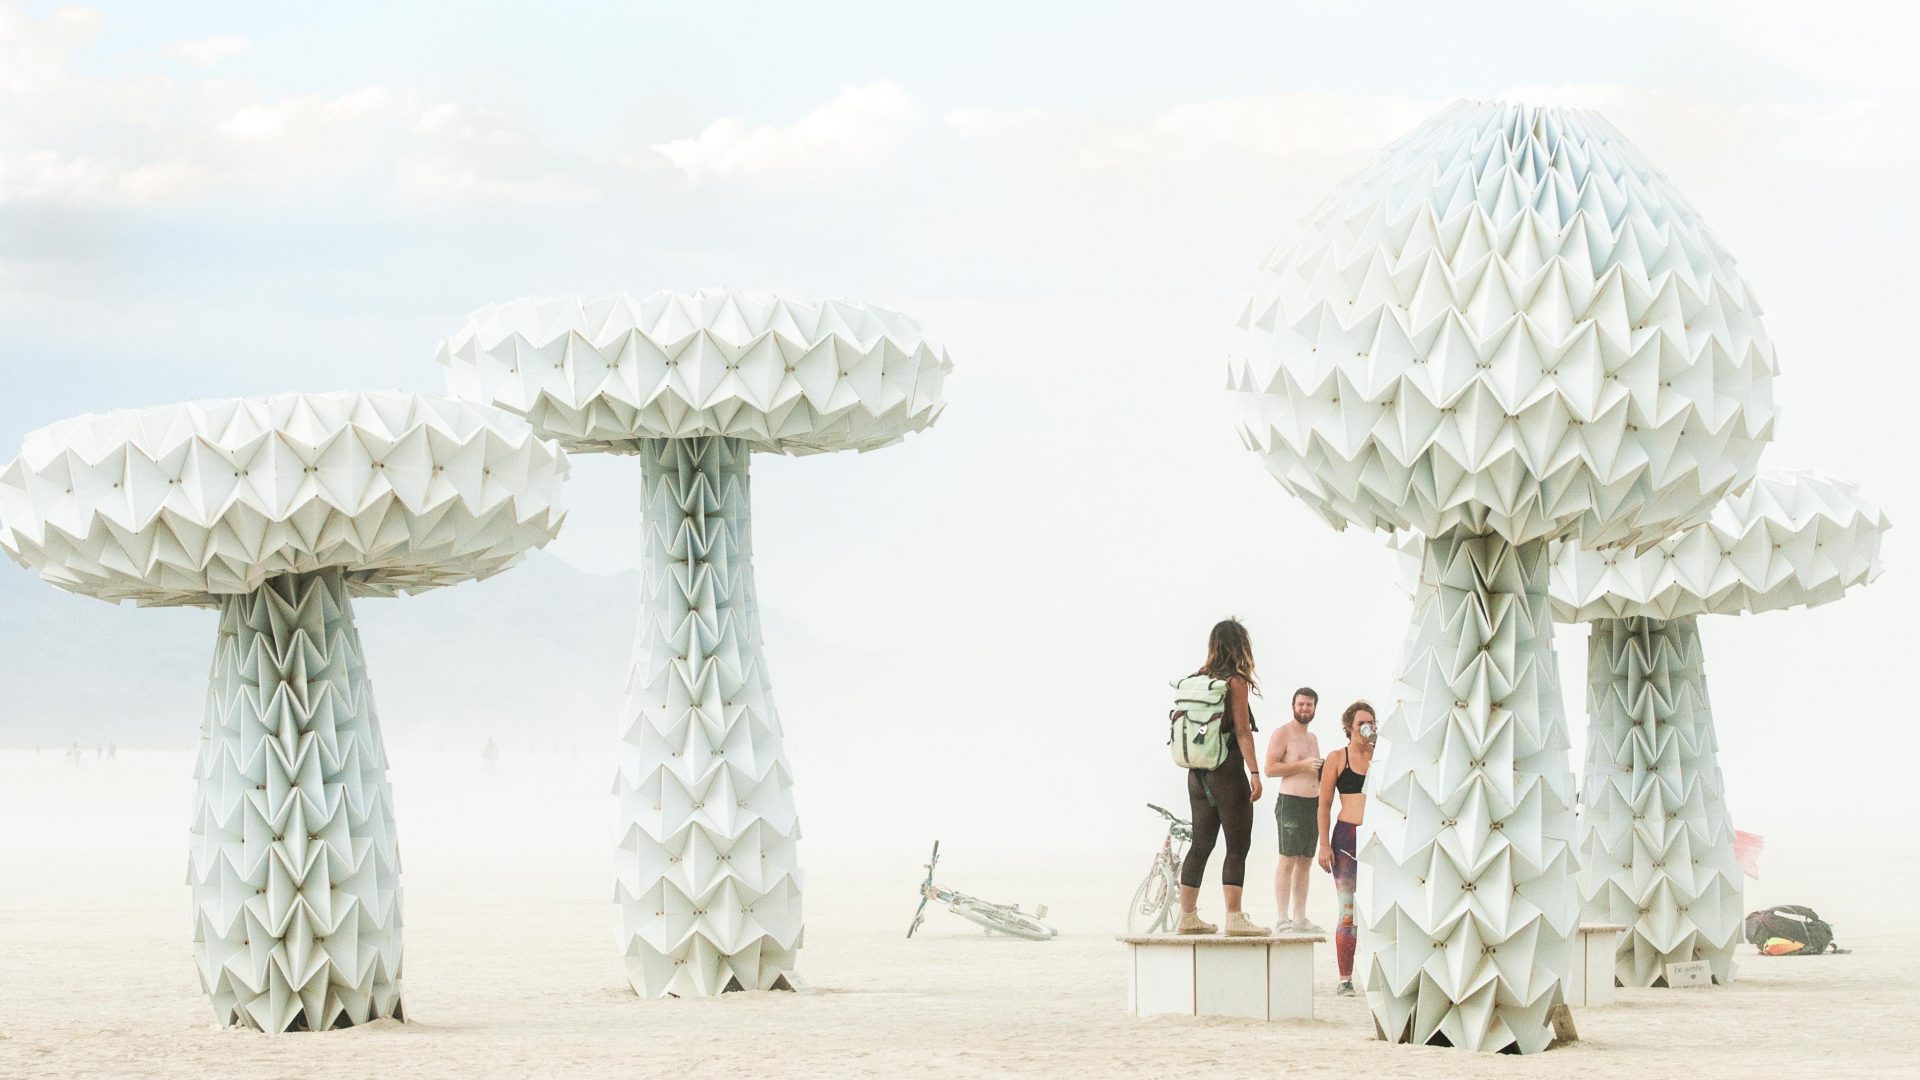 People stand around one of the art pieces at Burning Man.